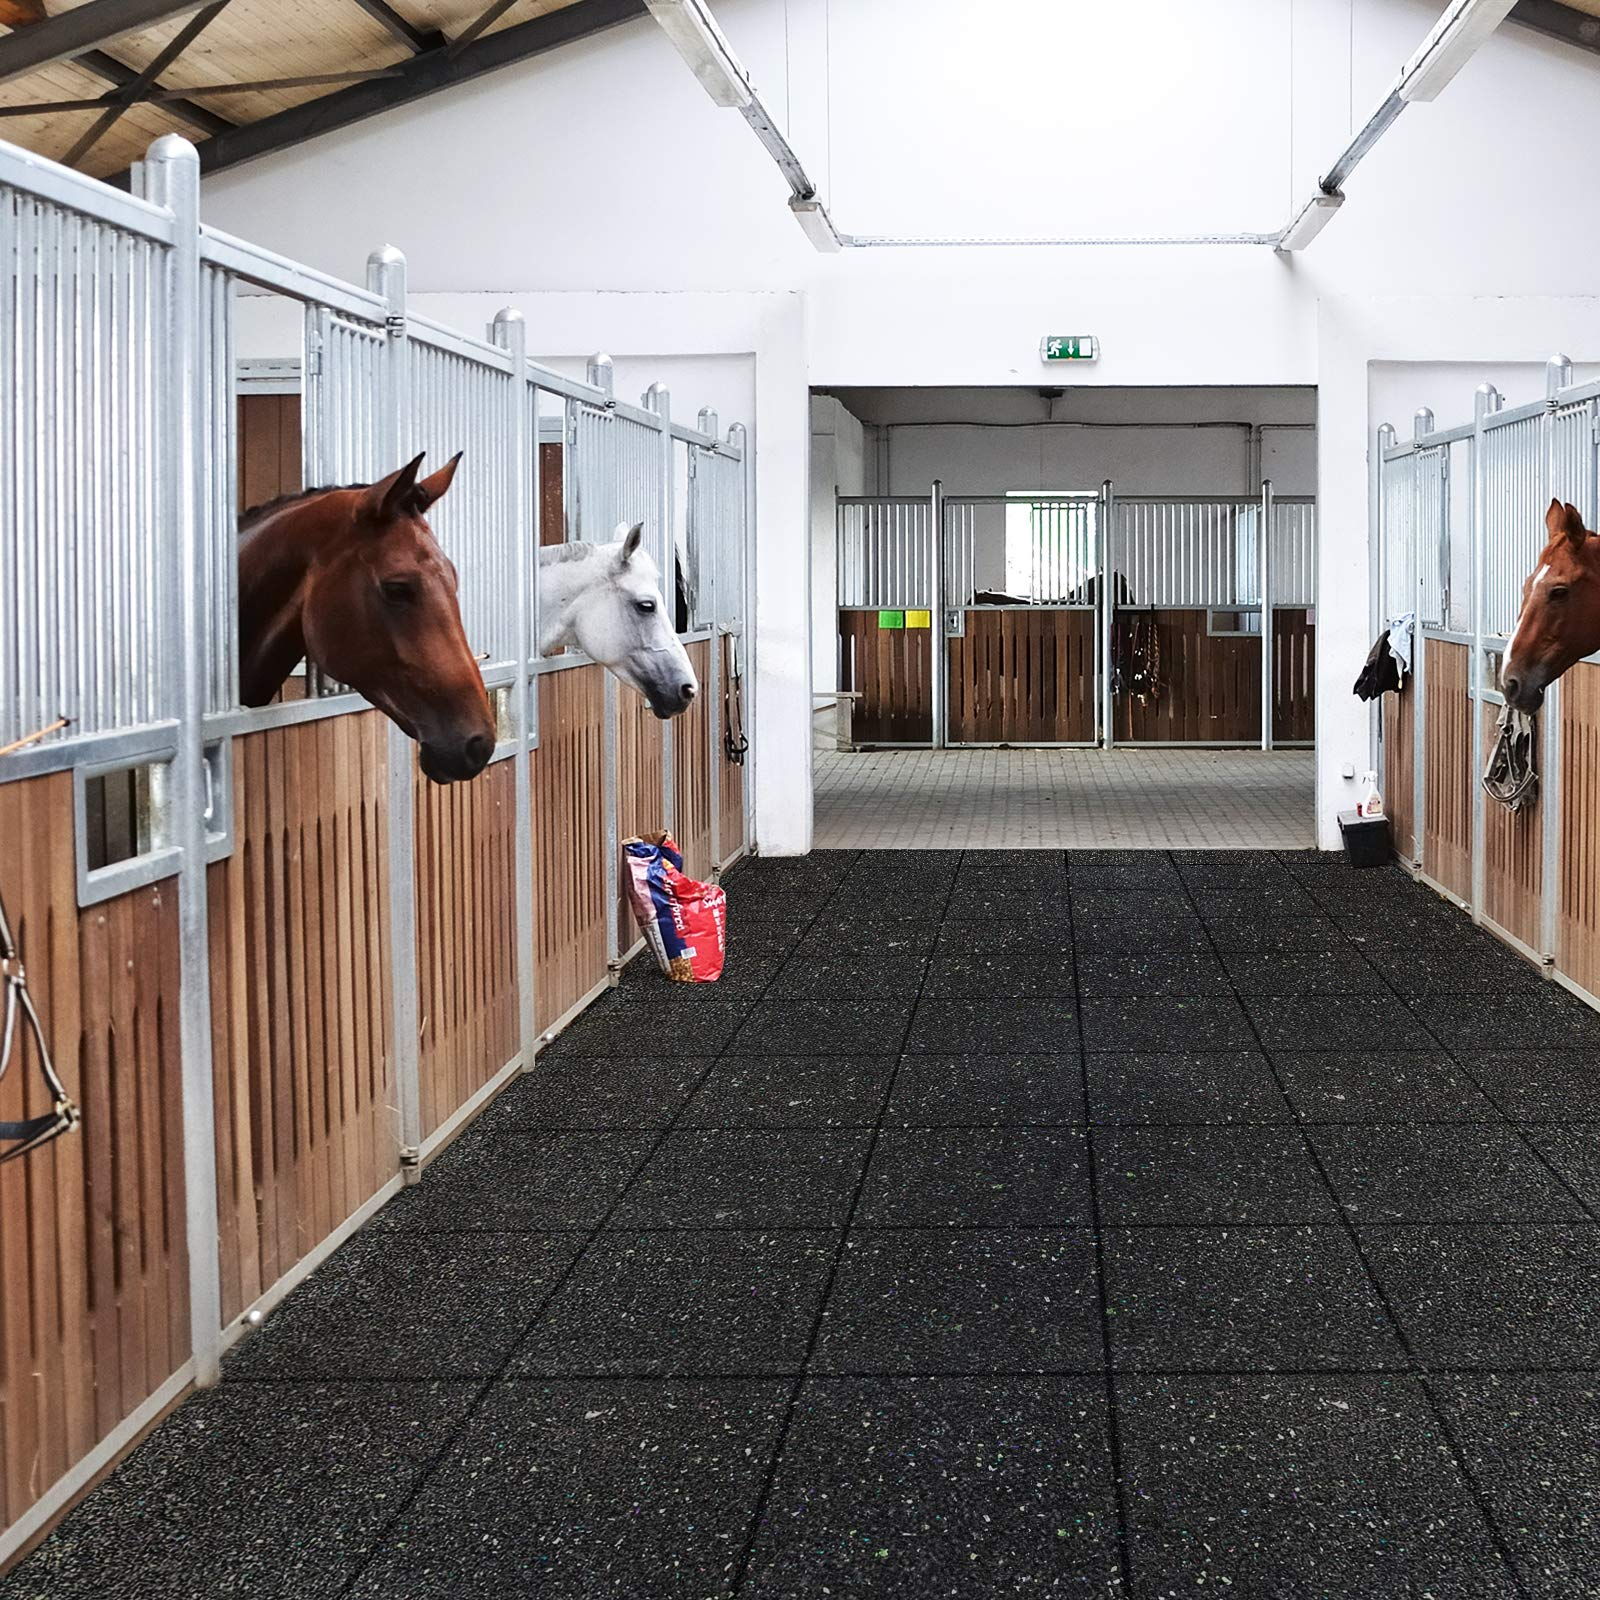 Ergocell Recycled Rubber Floor Mat – Shock Absorbent Gym Mat Flooring & Horse Stall Mat | Three Thicknesses, Multiple Sizes | 3/8'' - 2' x 2' by Ergocell (Image #5)